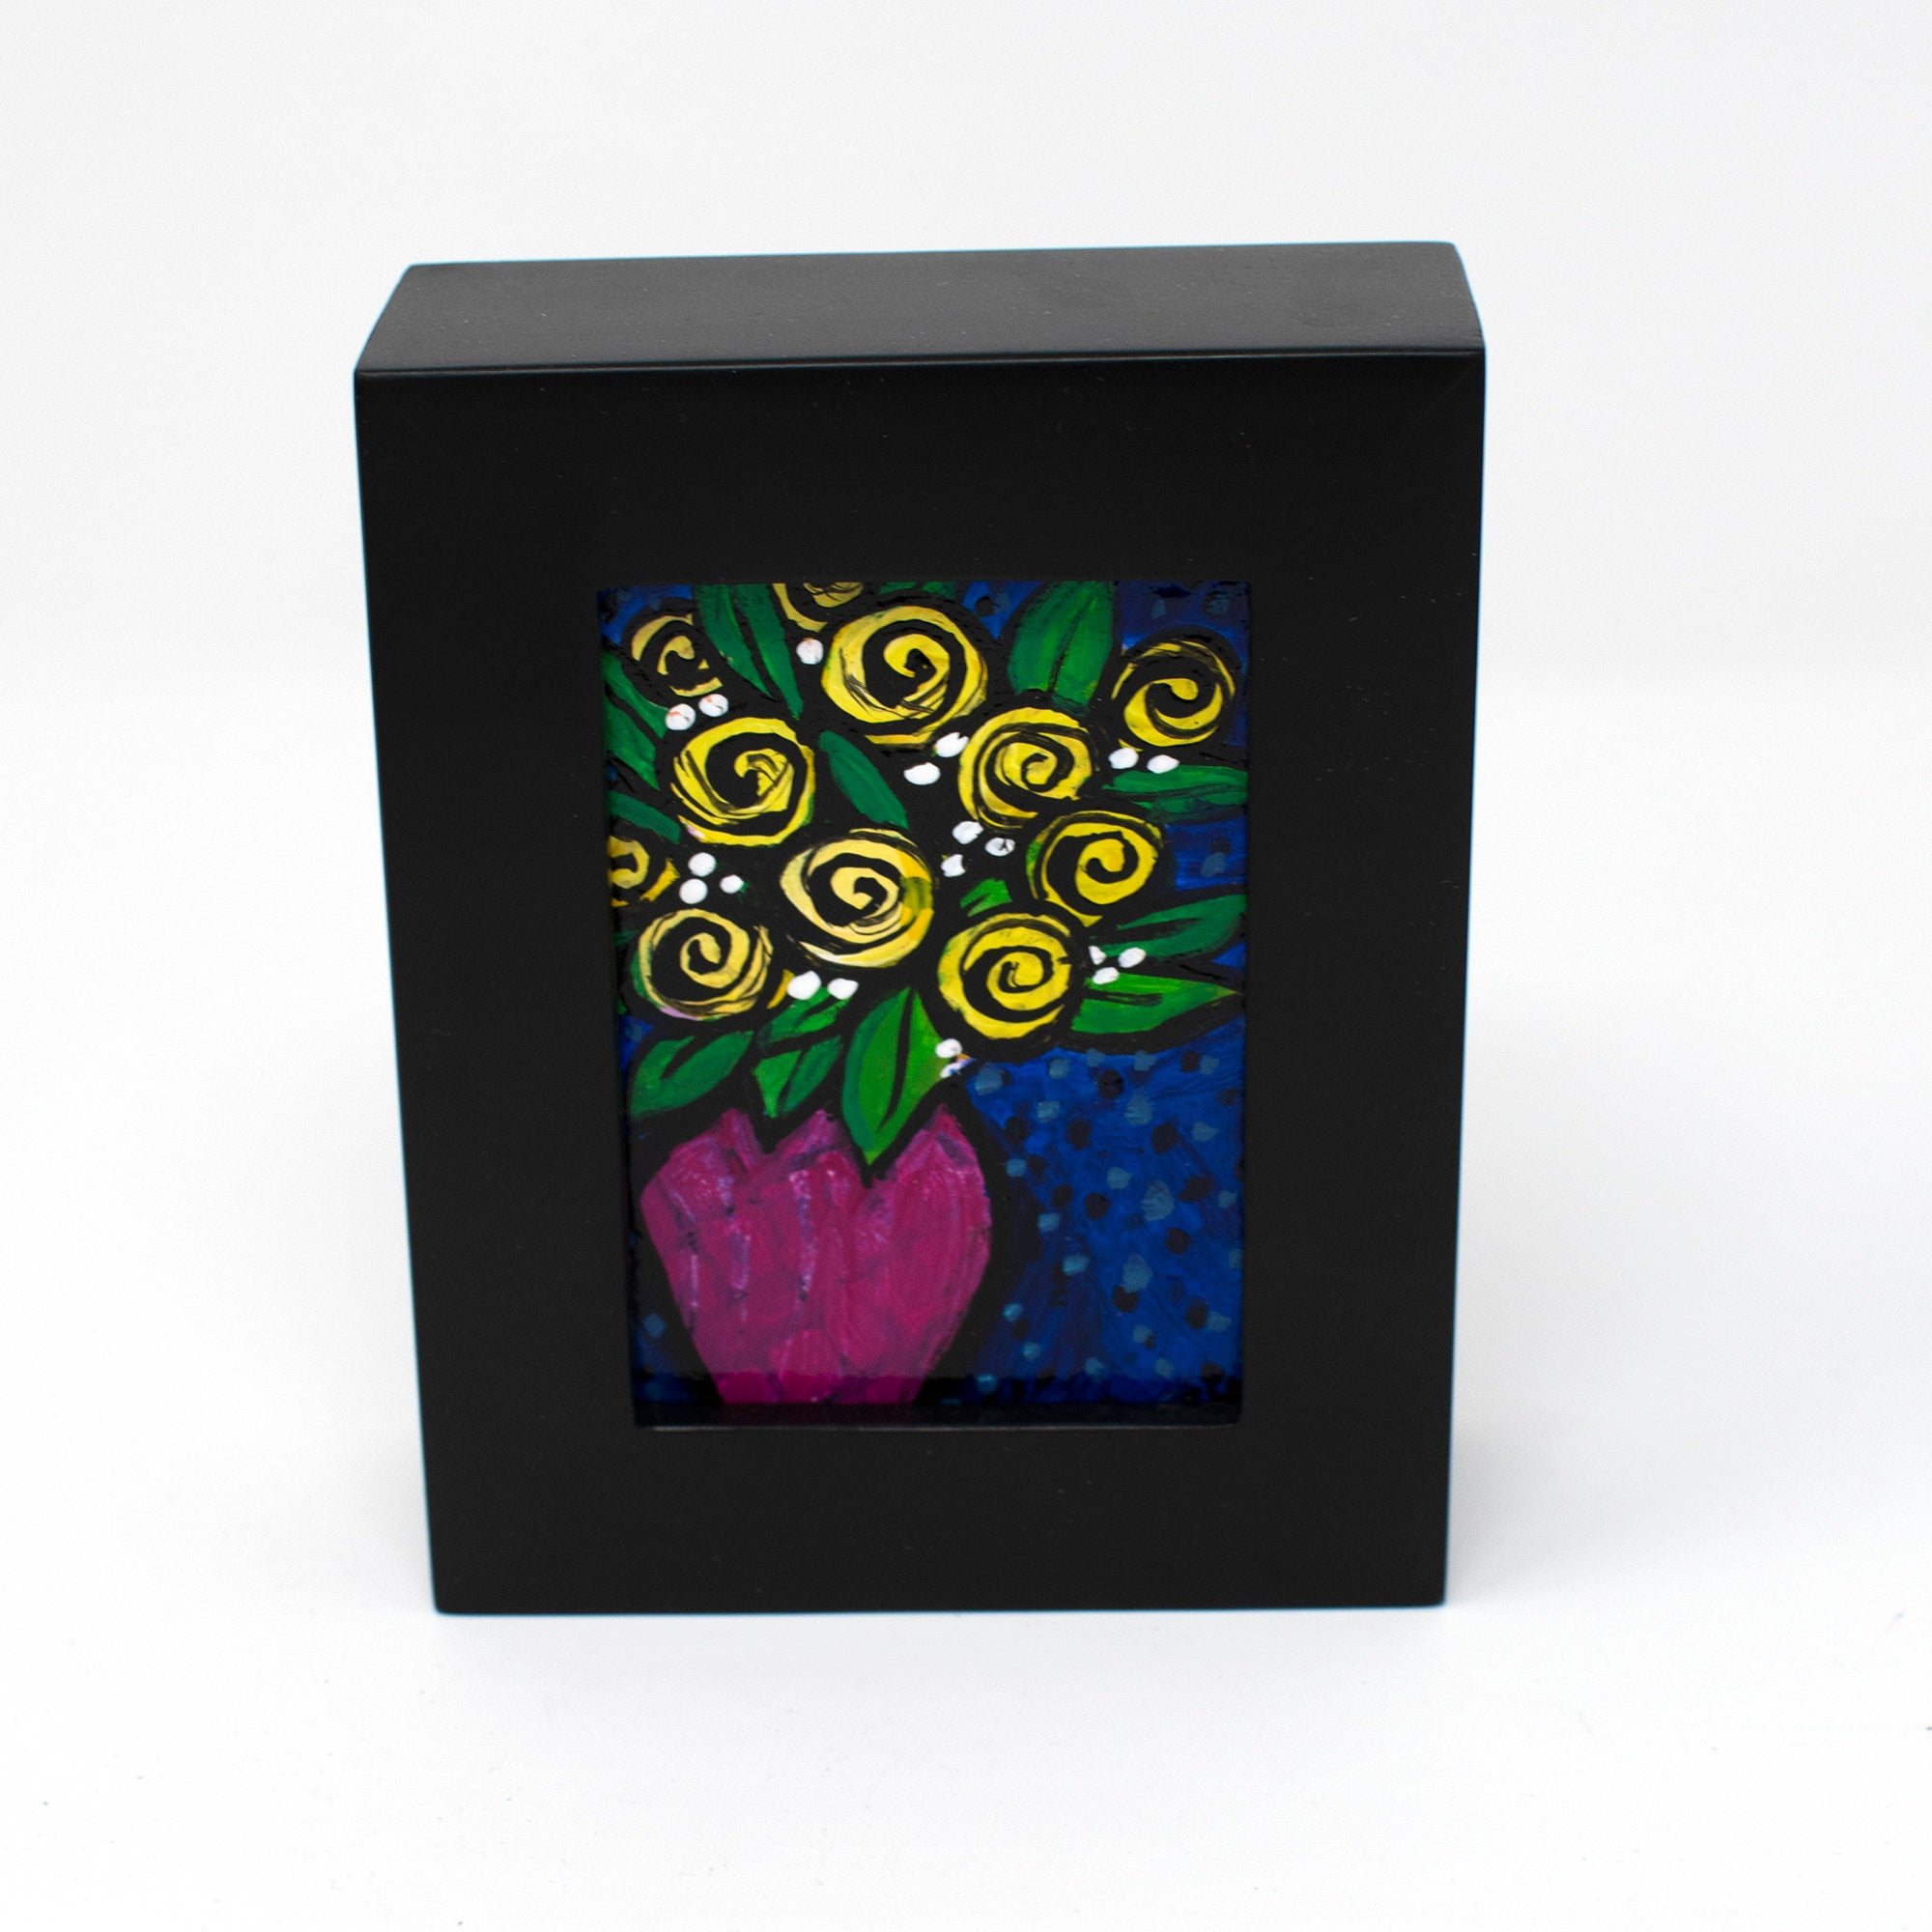 Yellow Rose Painting - Framed Mini Painting for Desk, Shelf, Table or Wall